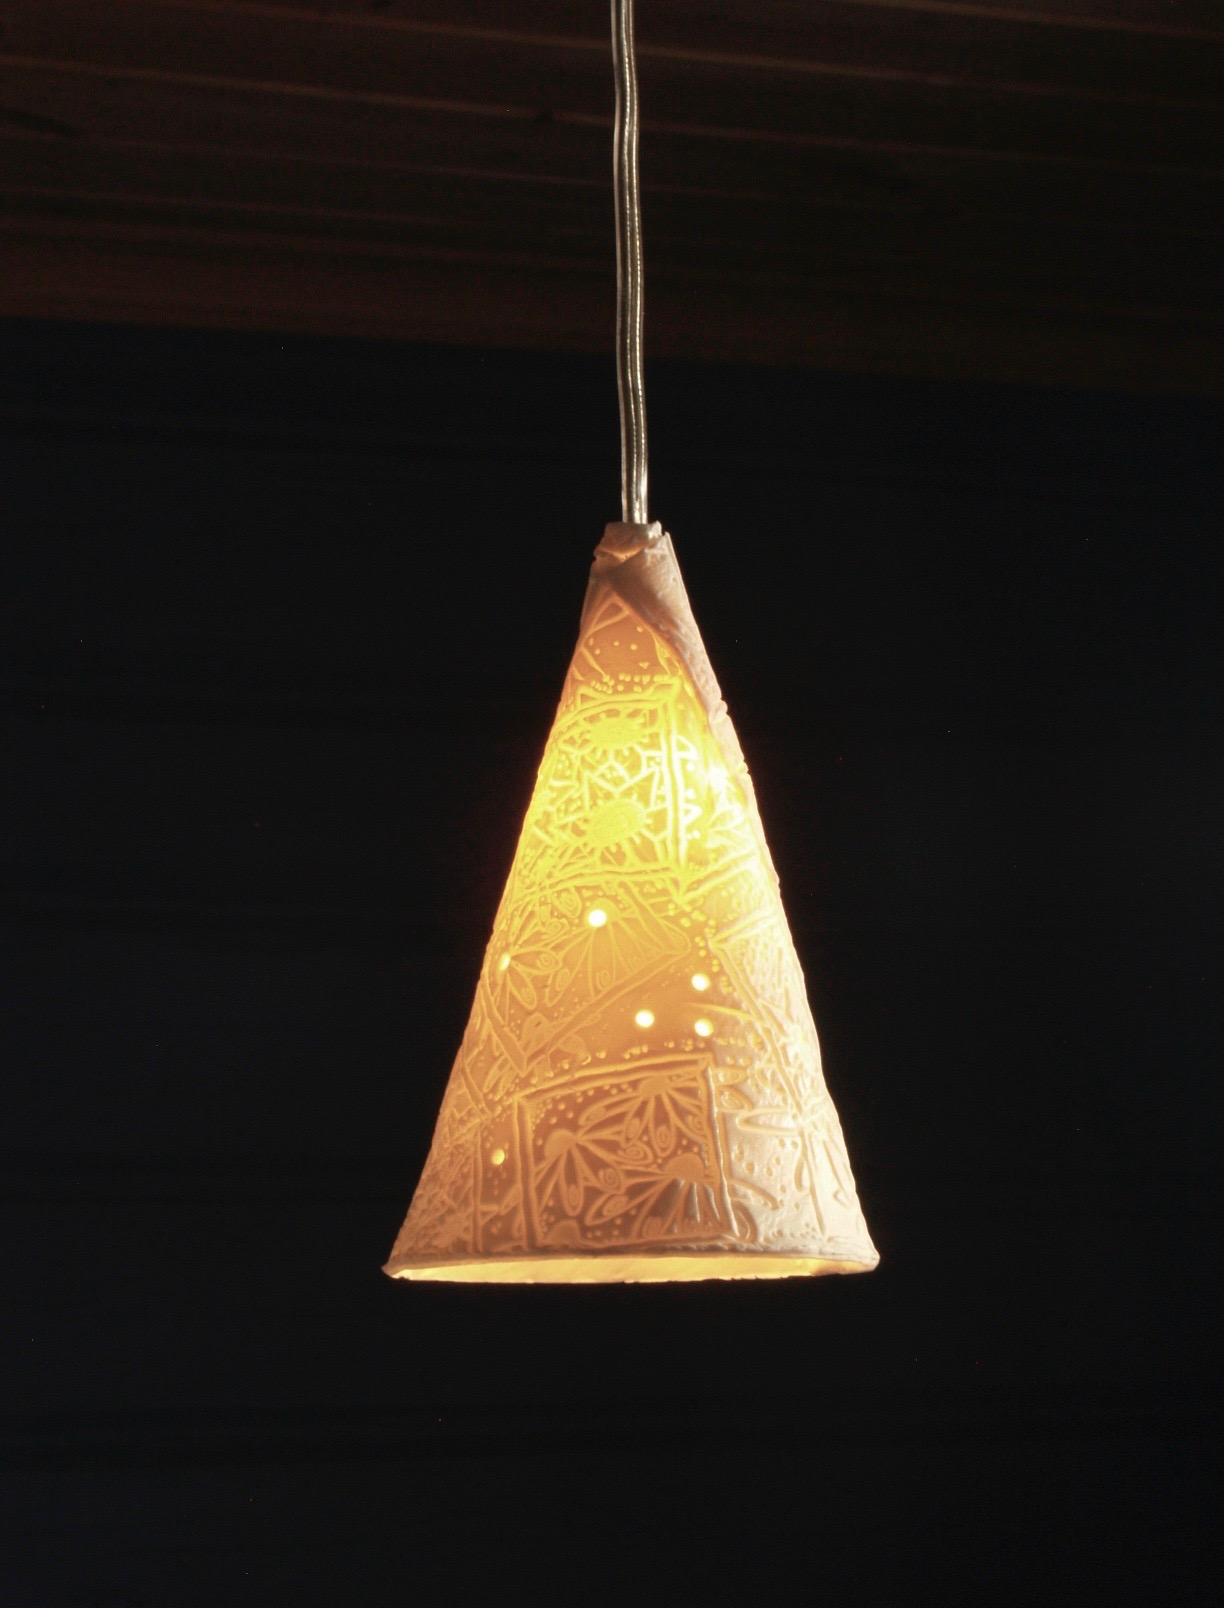 Cone shaped pendant light with abstract floral pattern